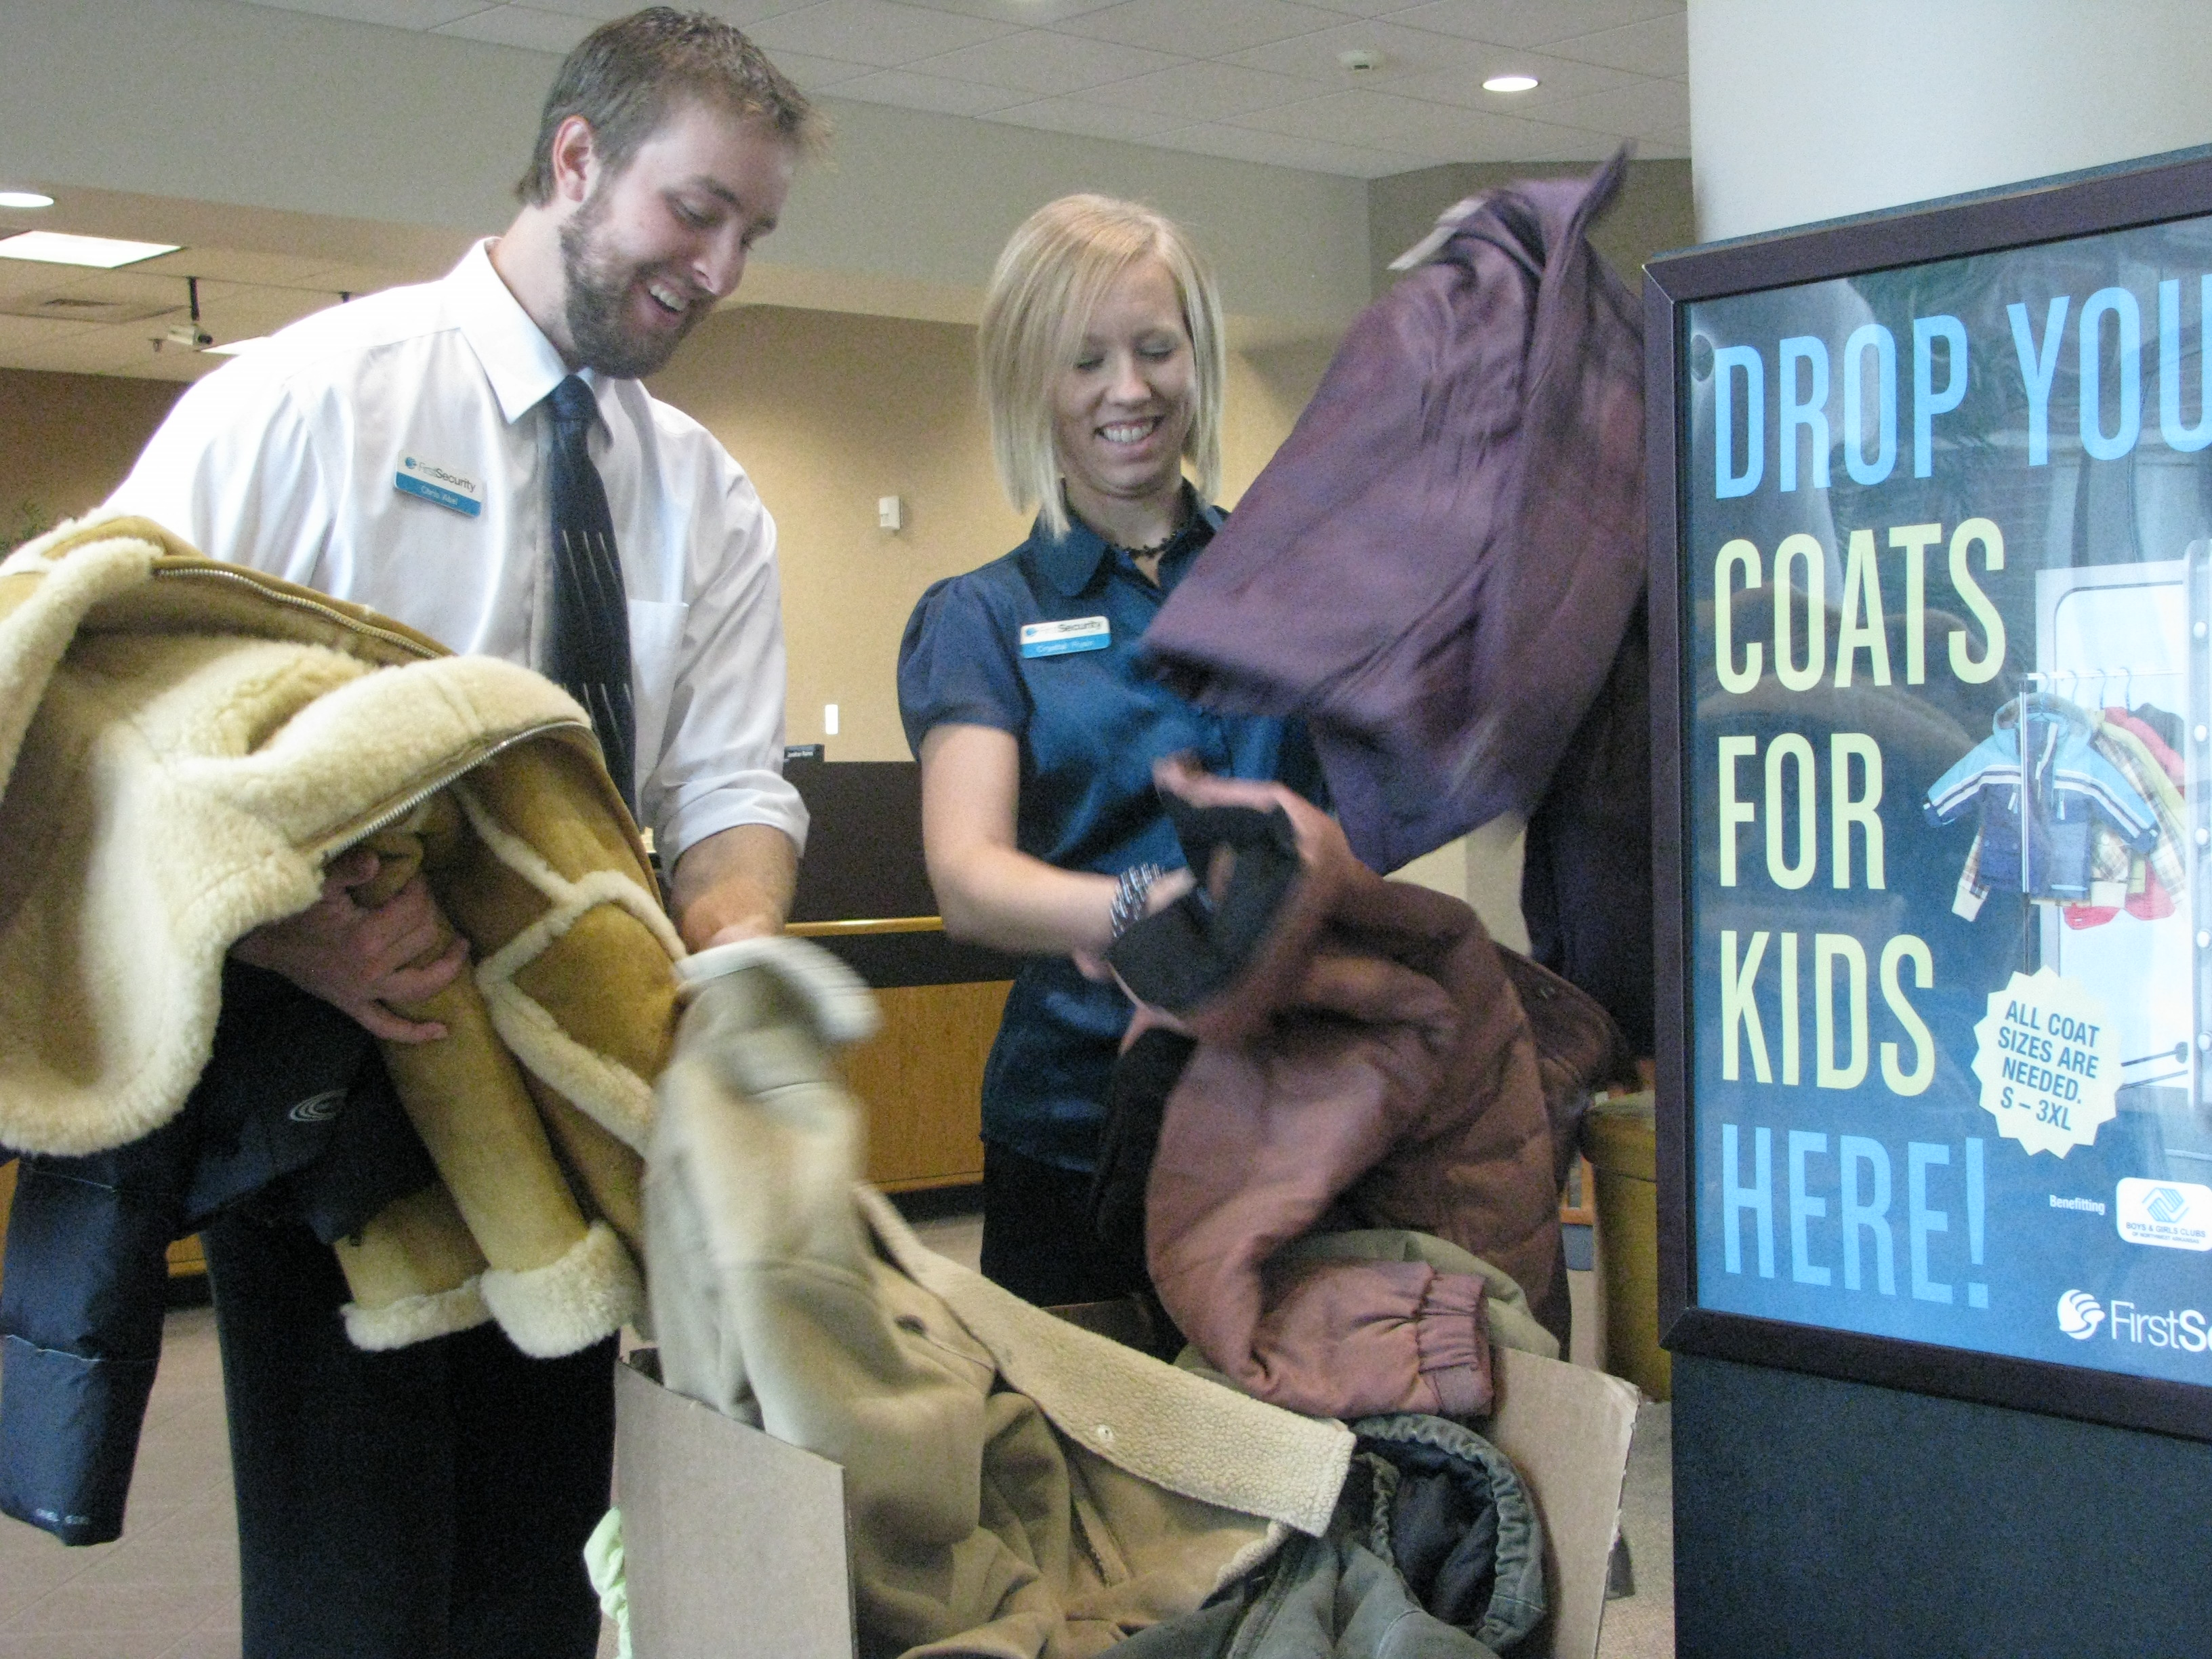 Got outgrown coats? Donate them to kids in need